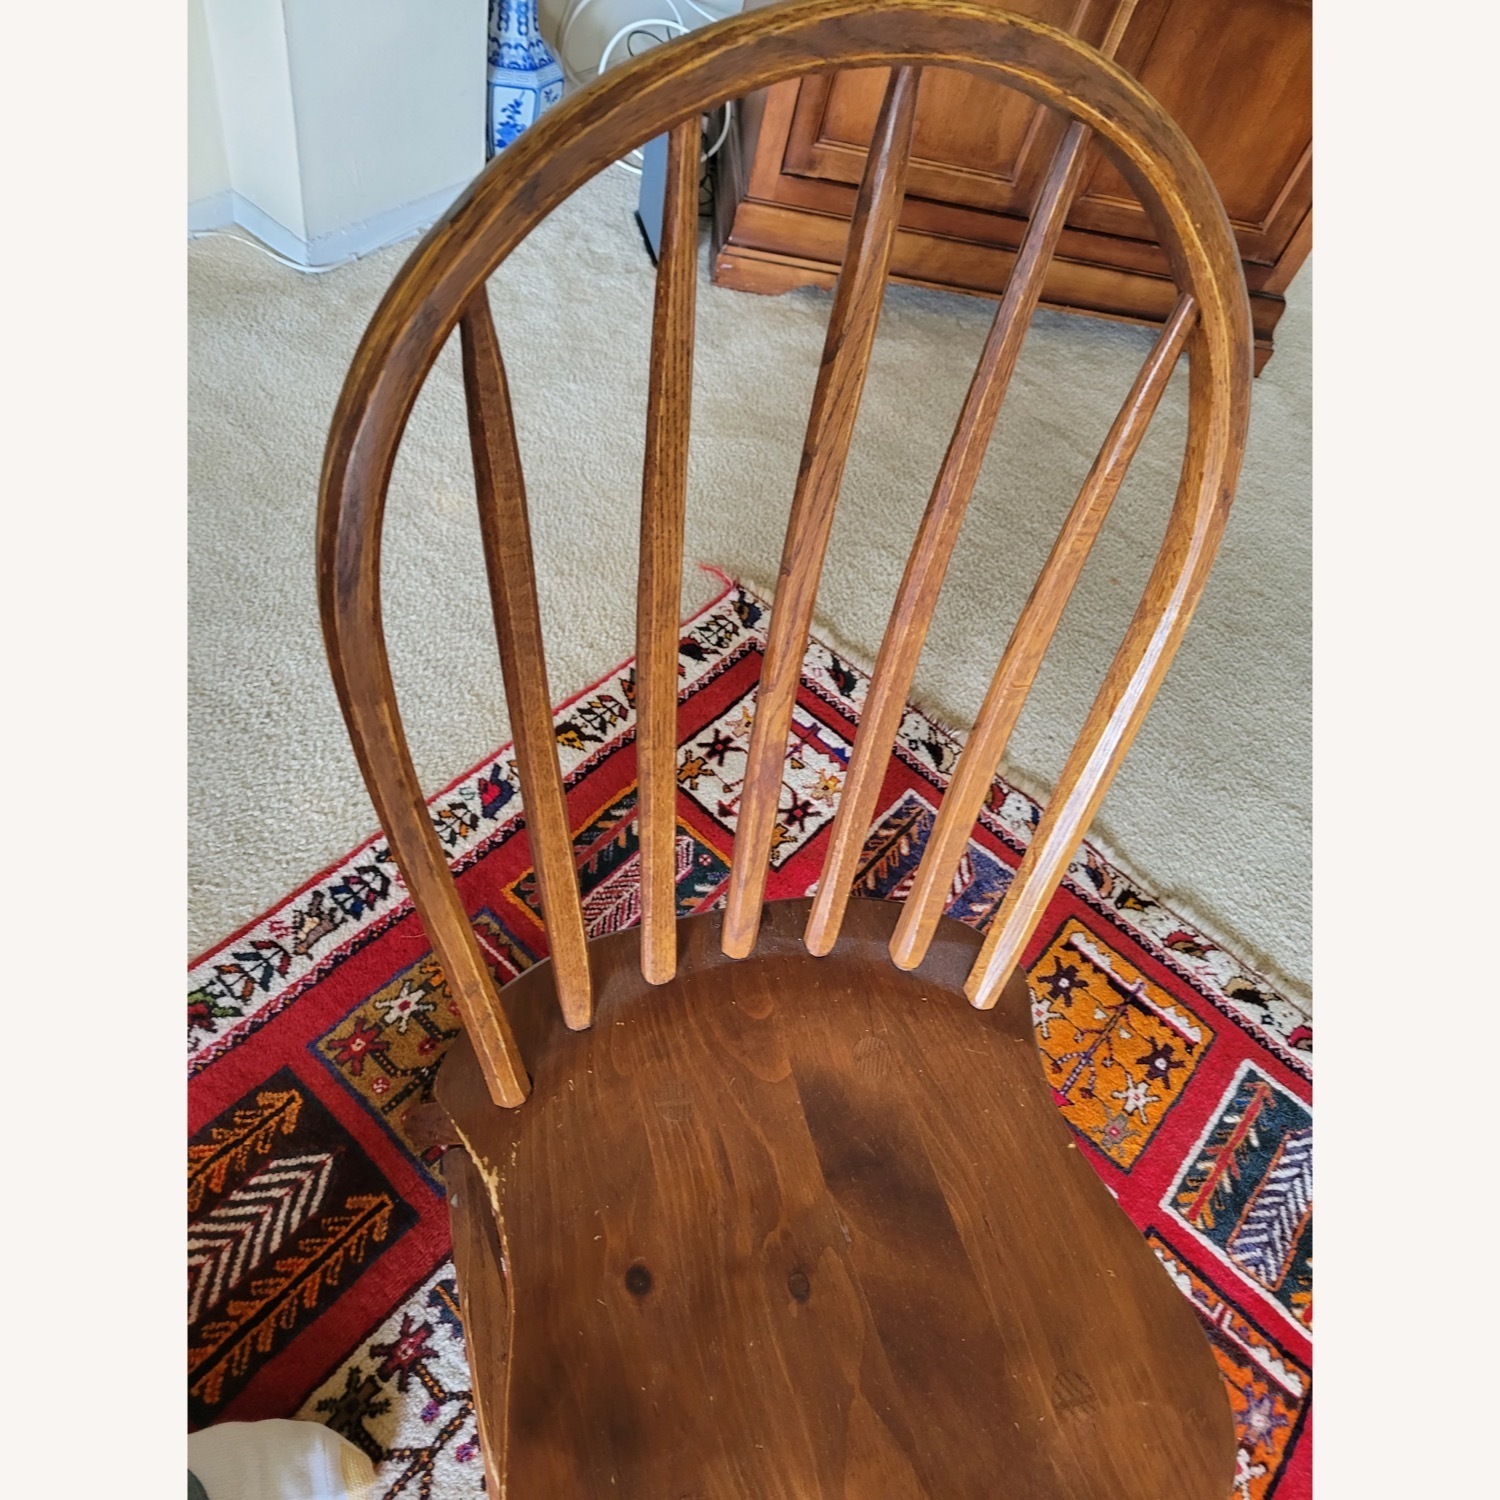 Curved Hunt Furniture Wood Chairs - image-4